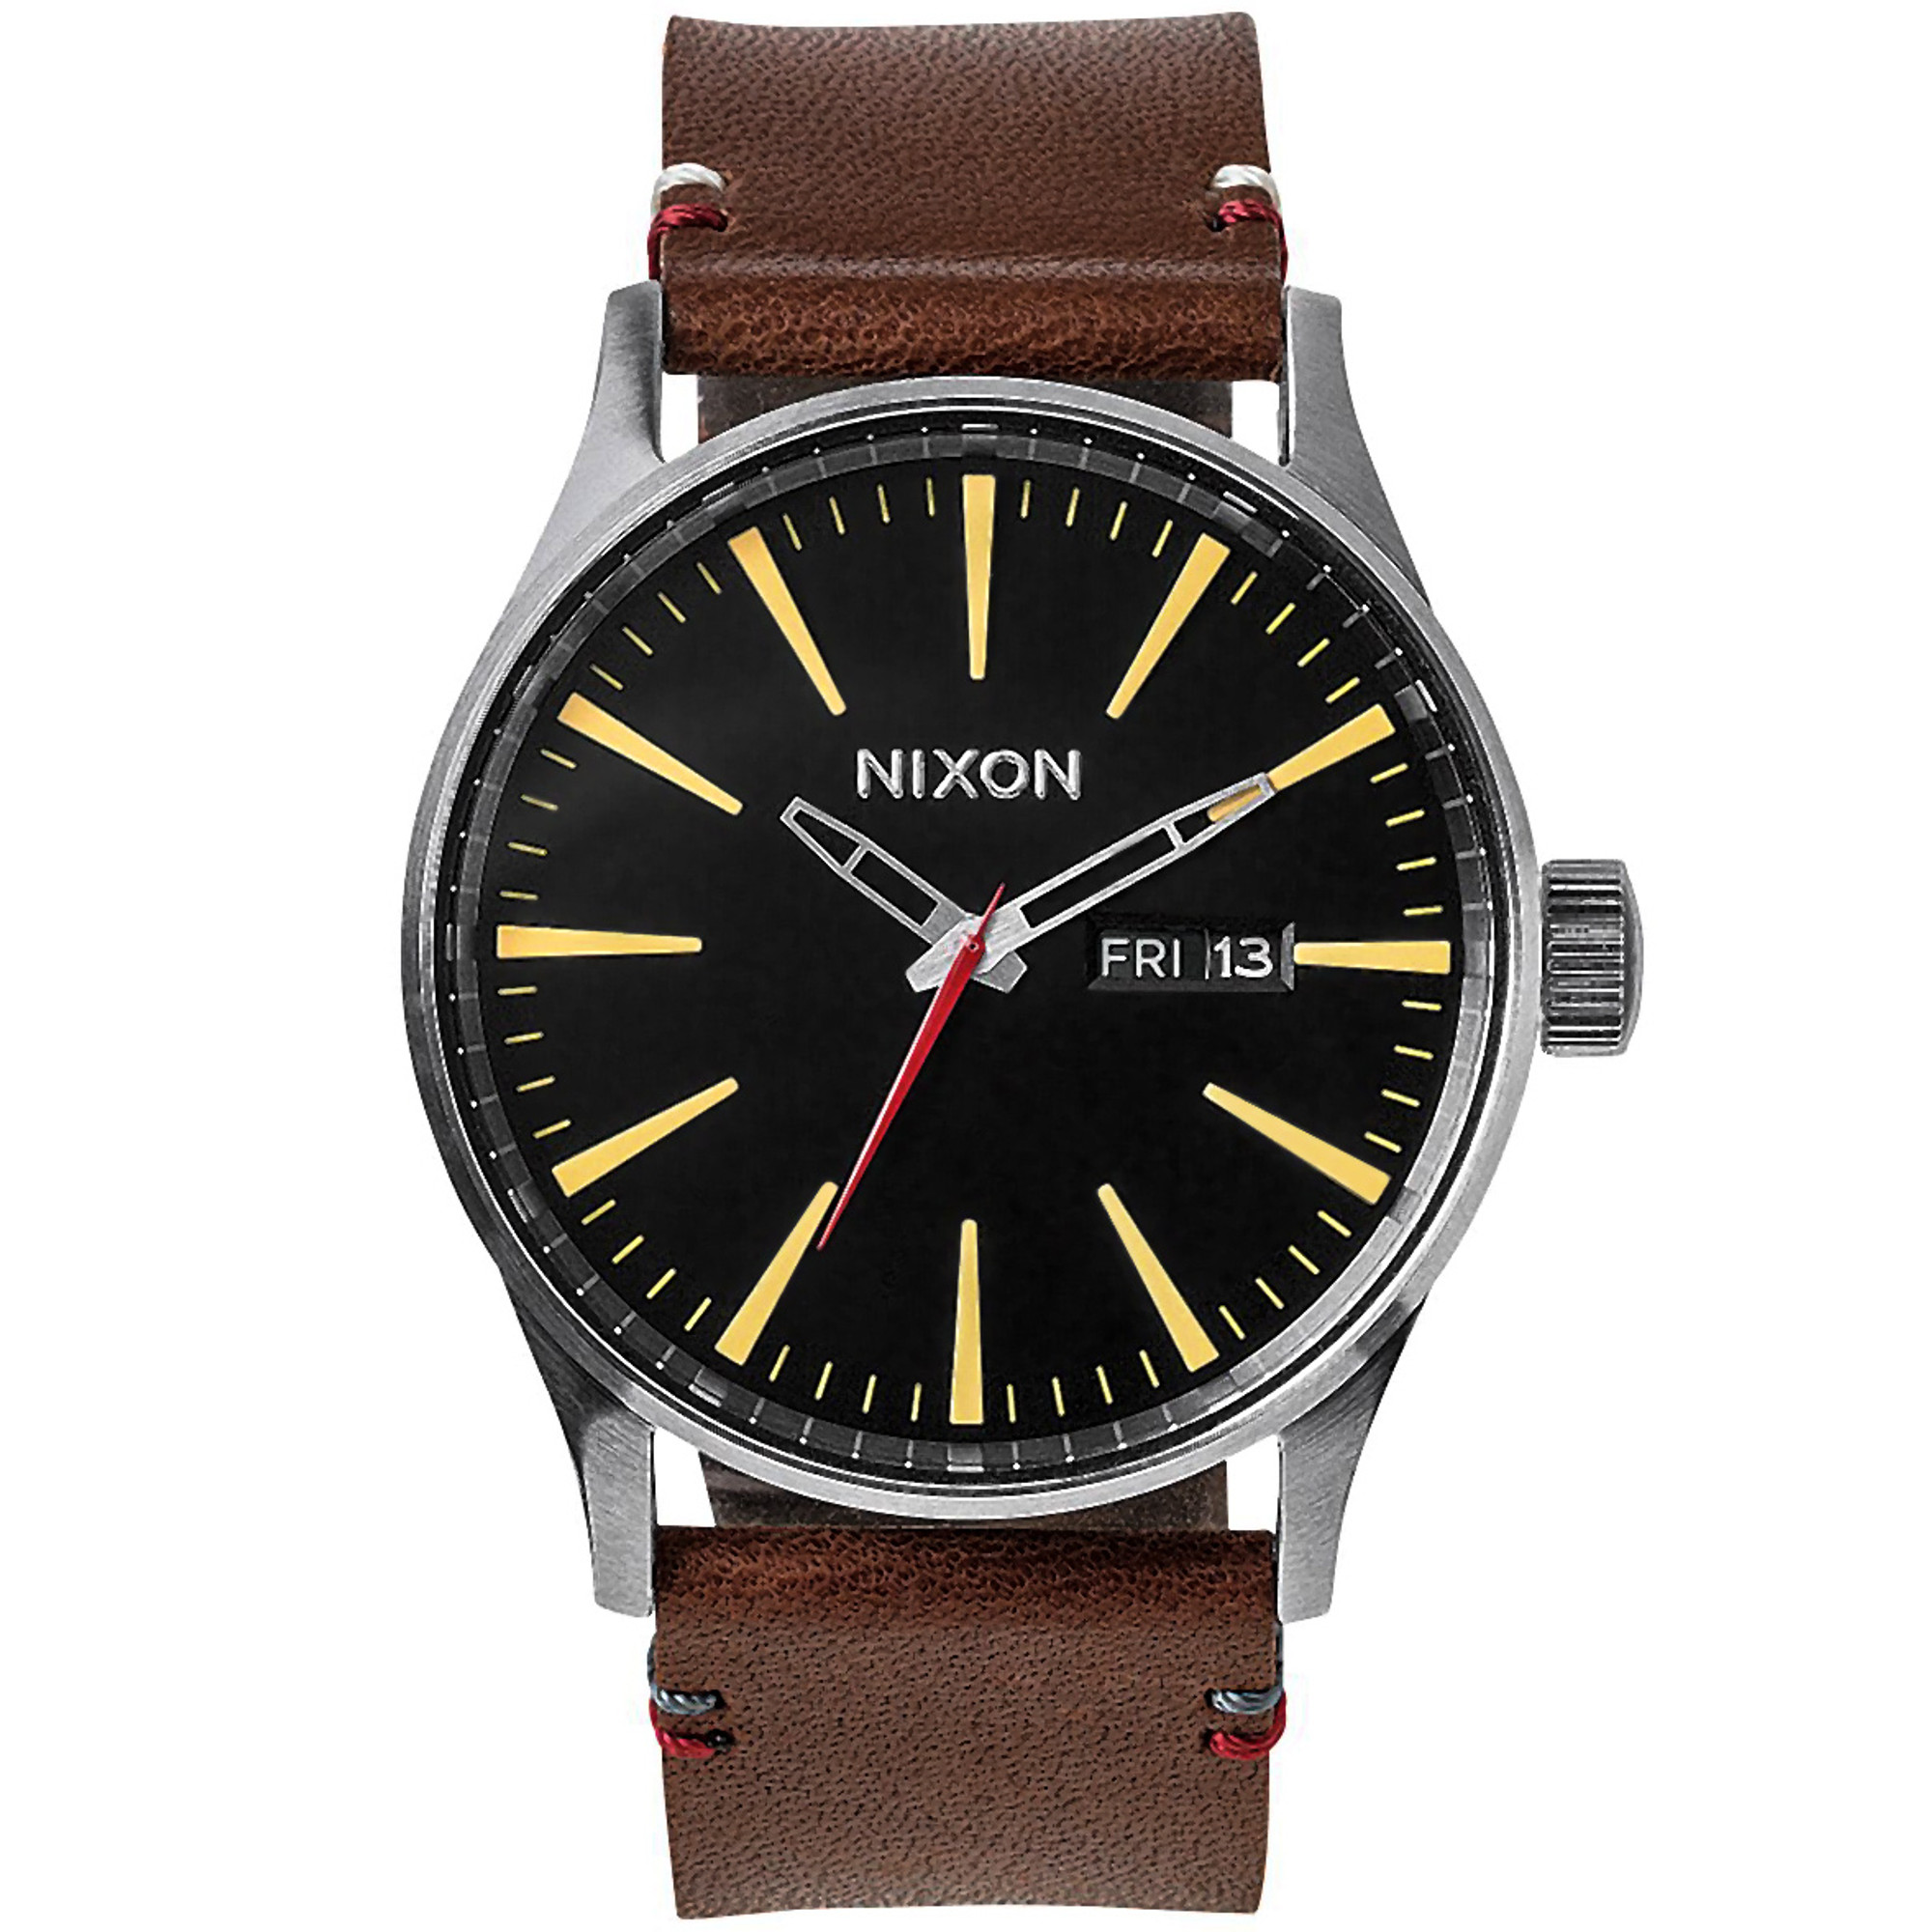 NIXON Sentry Leather A105-019-00